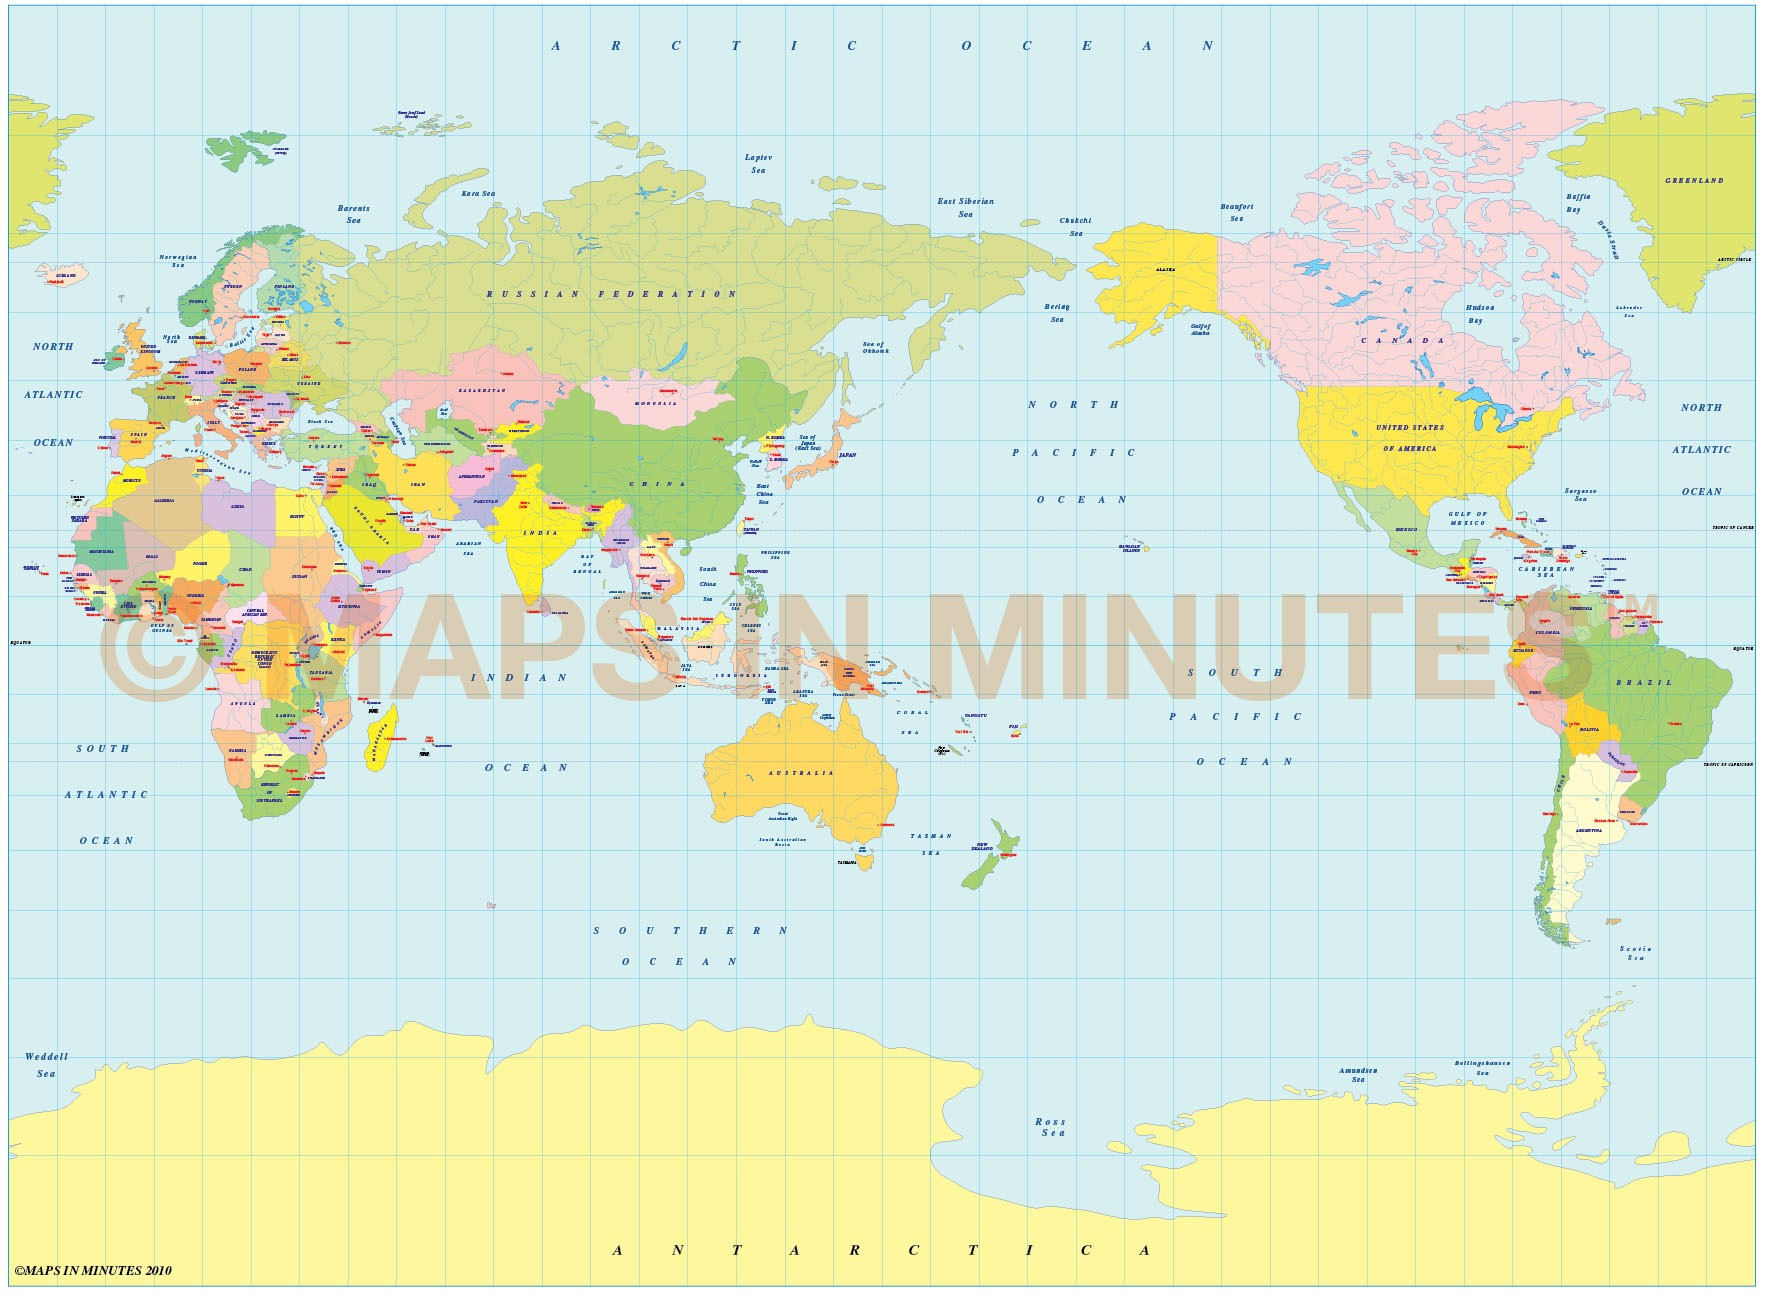 Vector world map miller projection political map small scale japan vector world map miller projection 100m scale japan centric publicscrutiny Choice Image